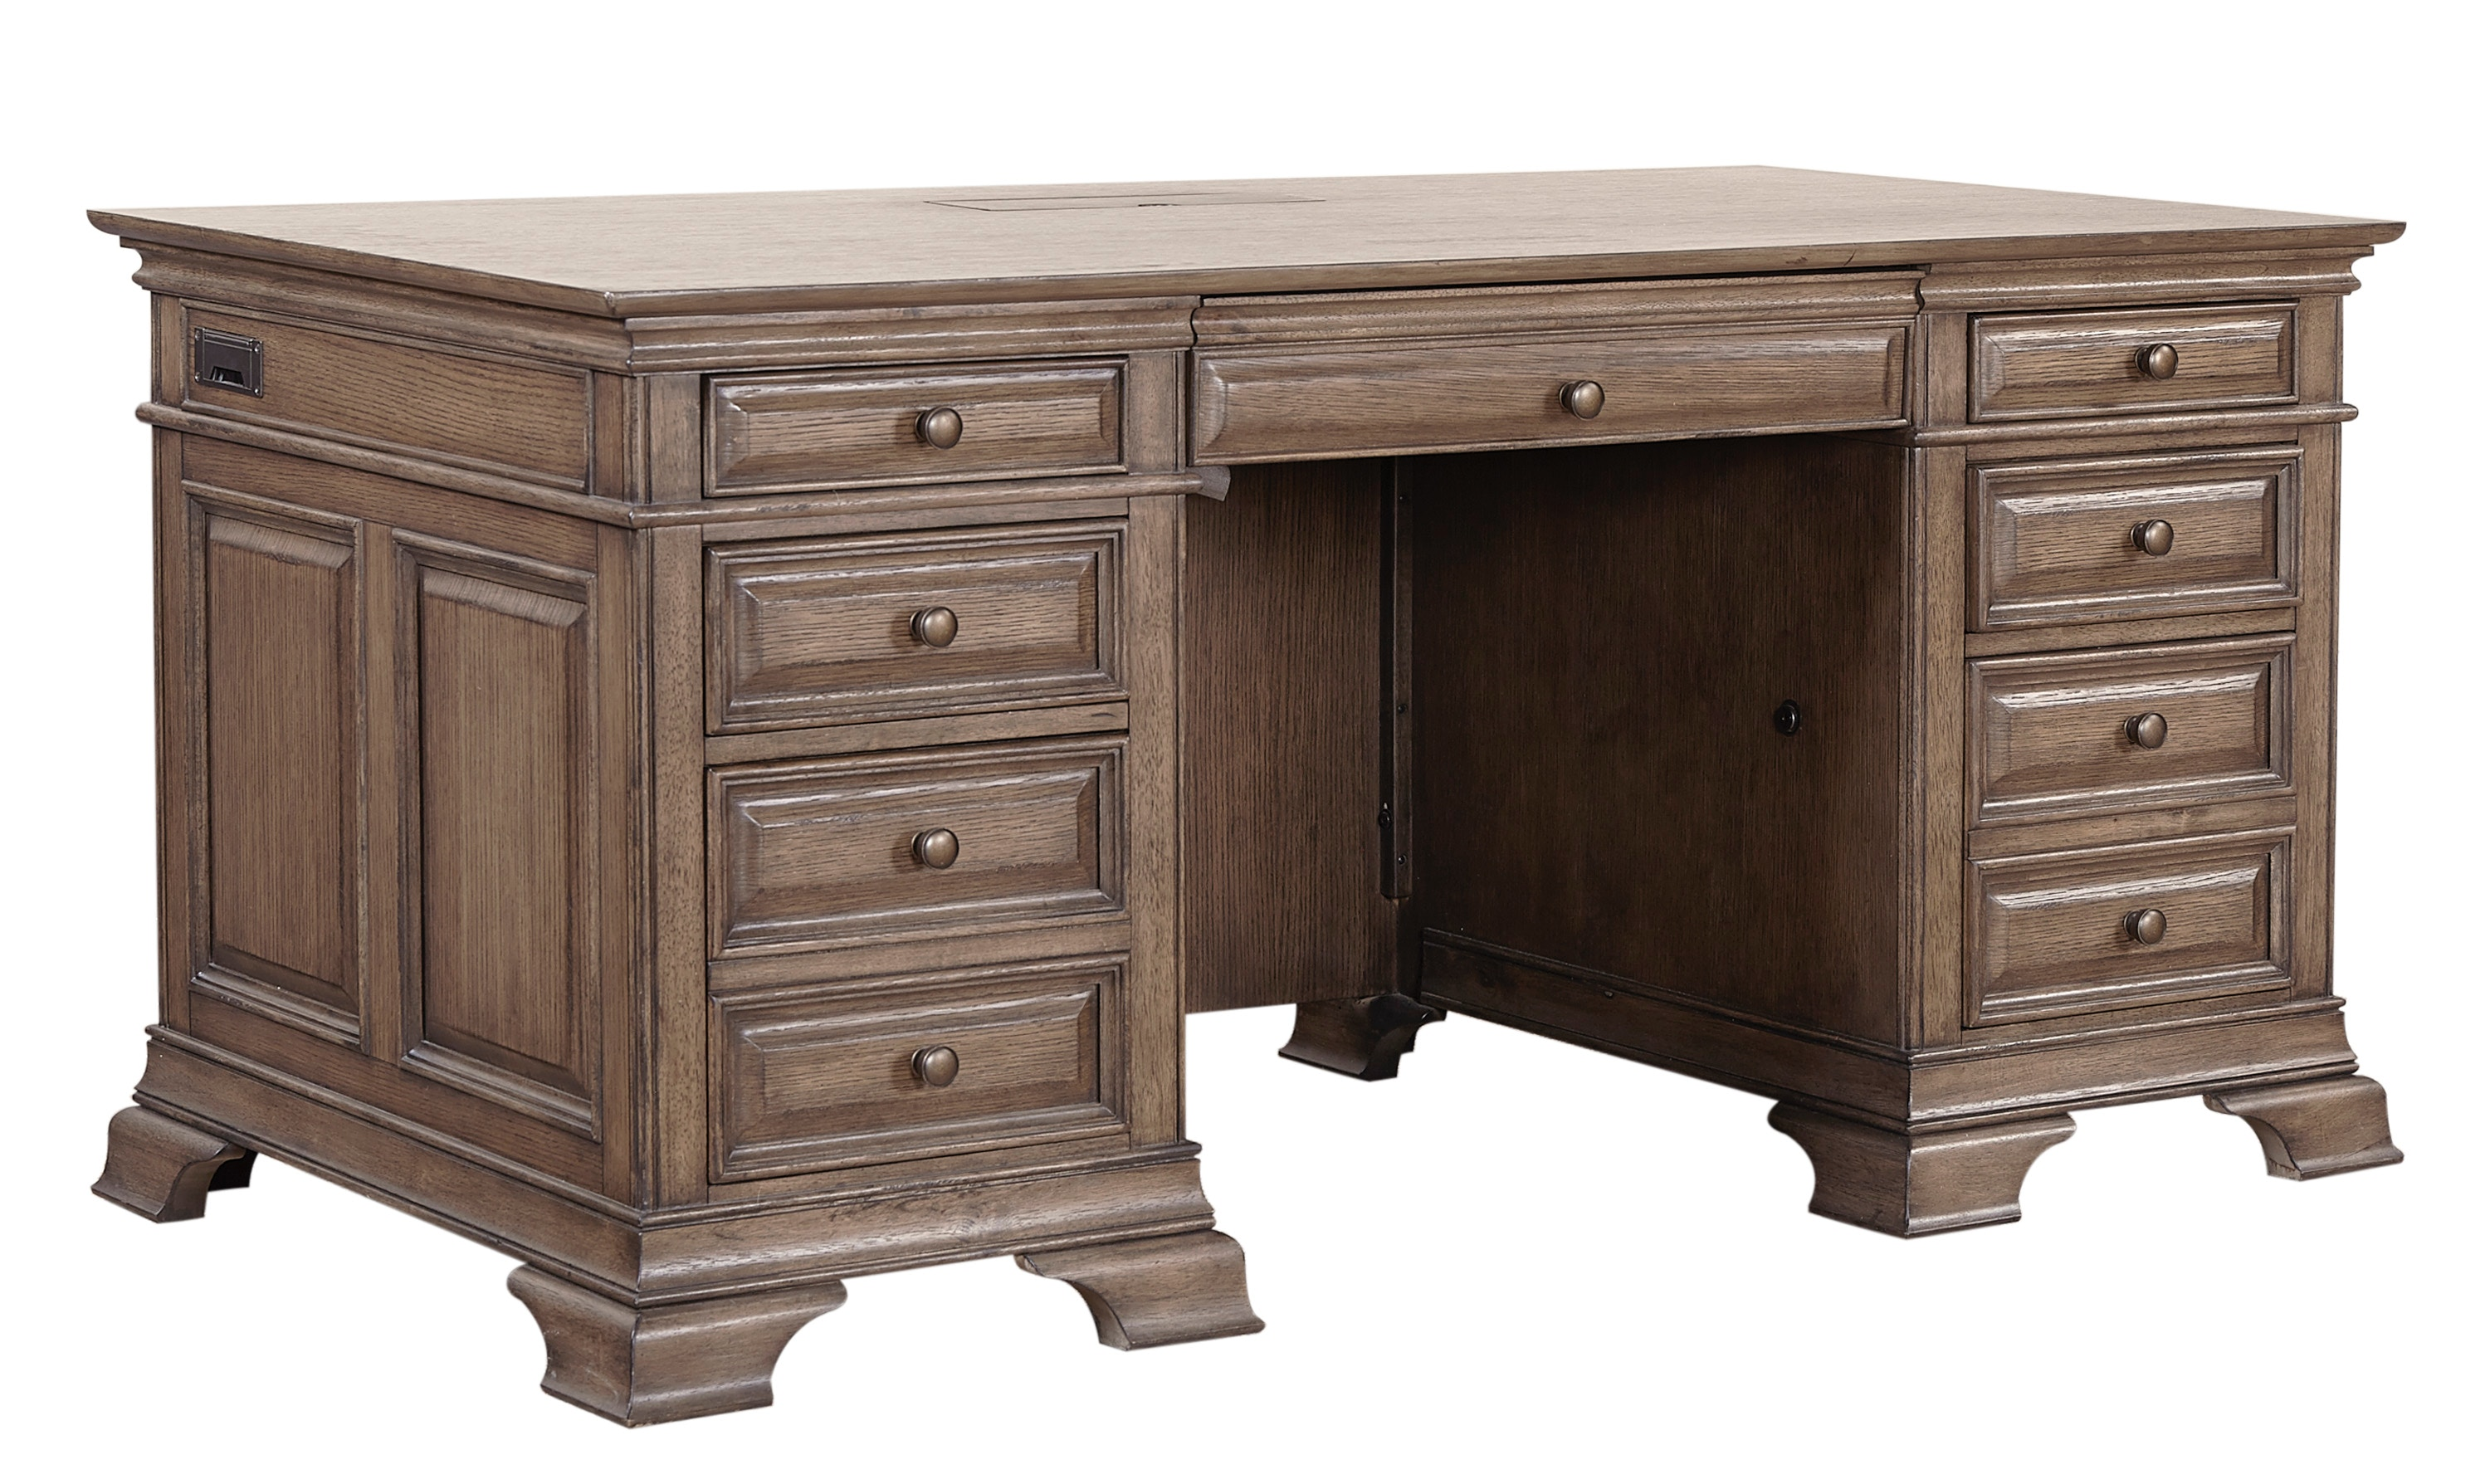 Stock Program HAMILTON 72 EXECUTIVE DESK HWI92300BTST From Walter E. Smithe  Furniture + Design